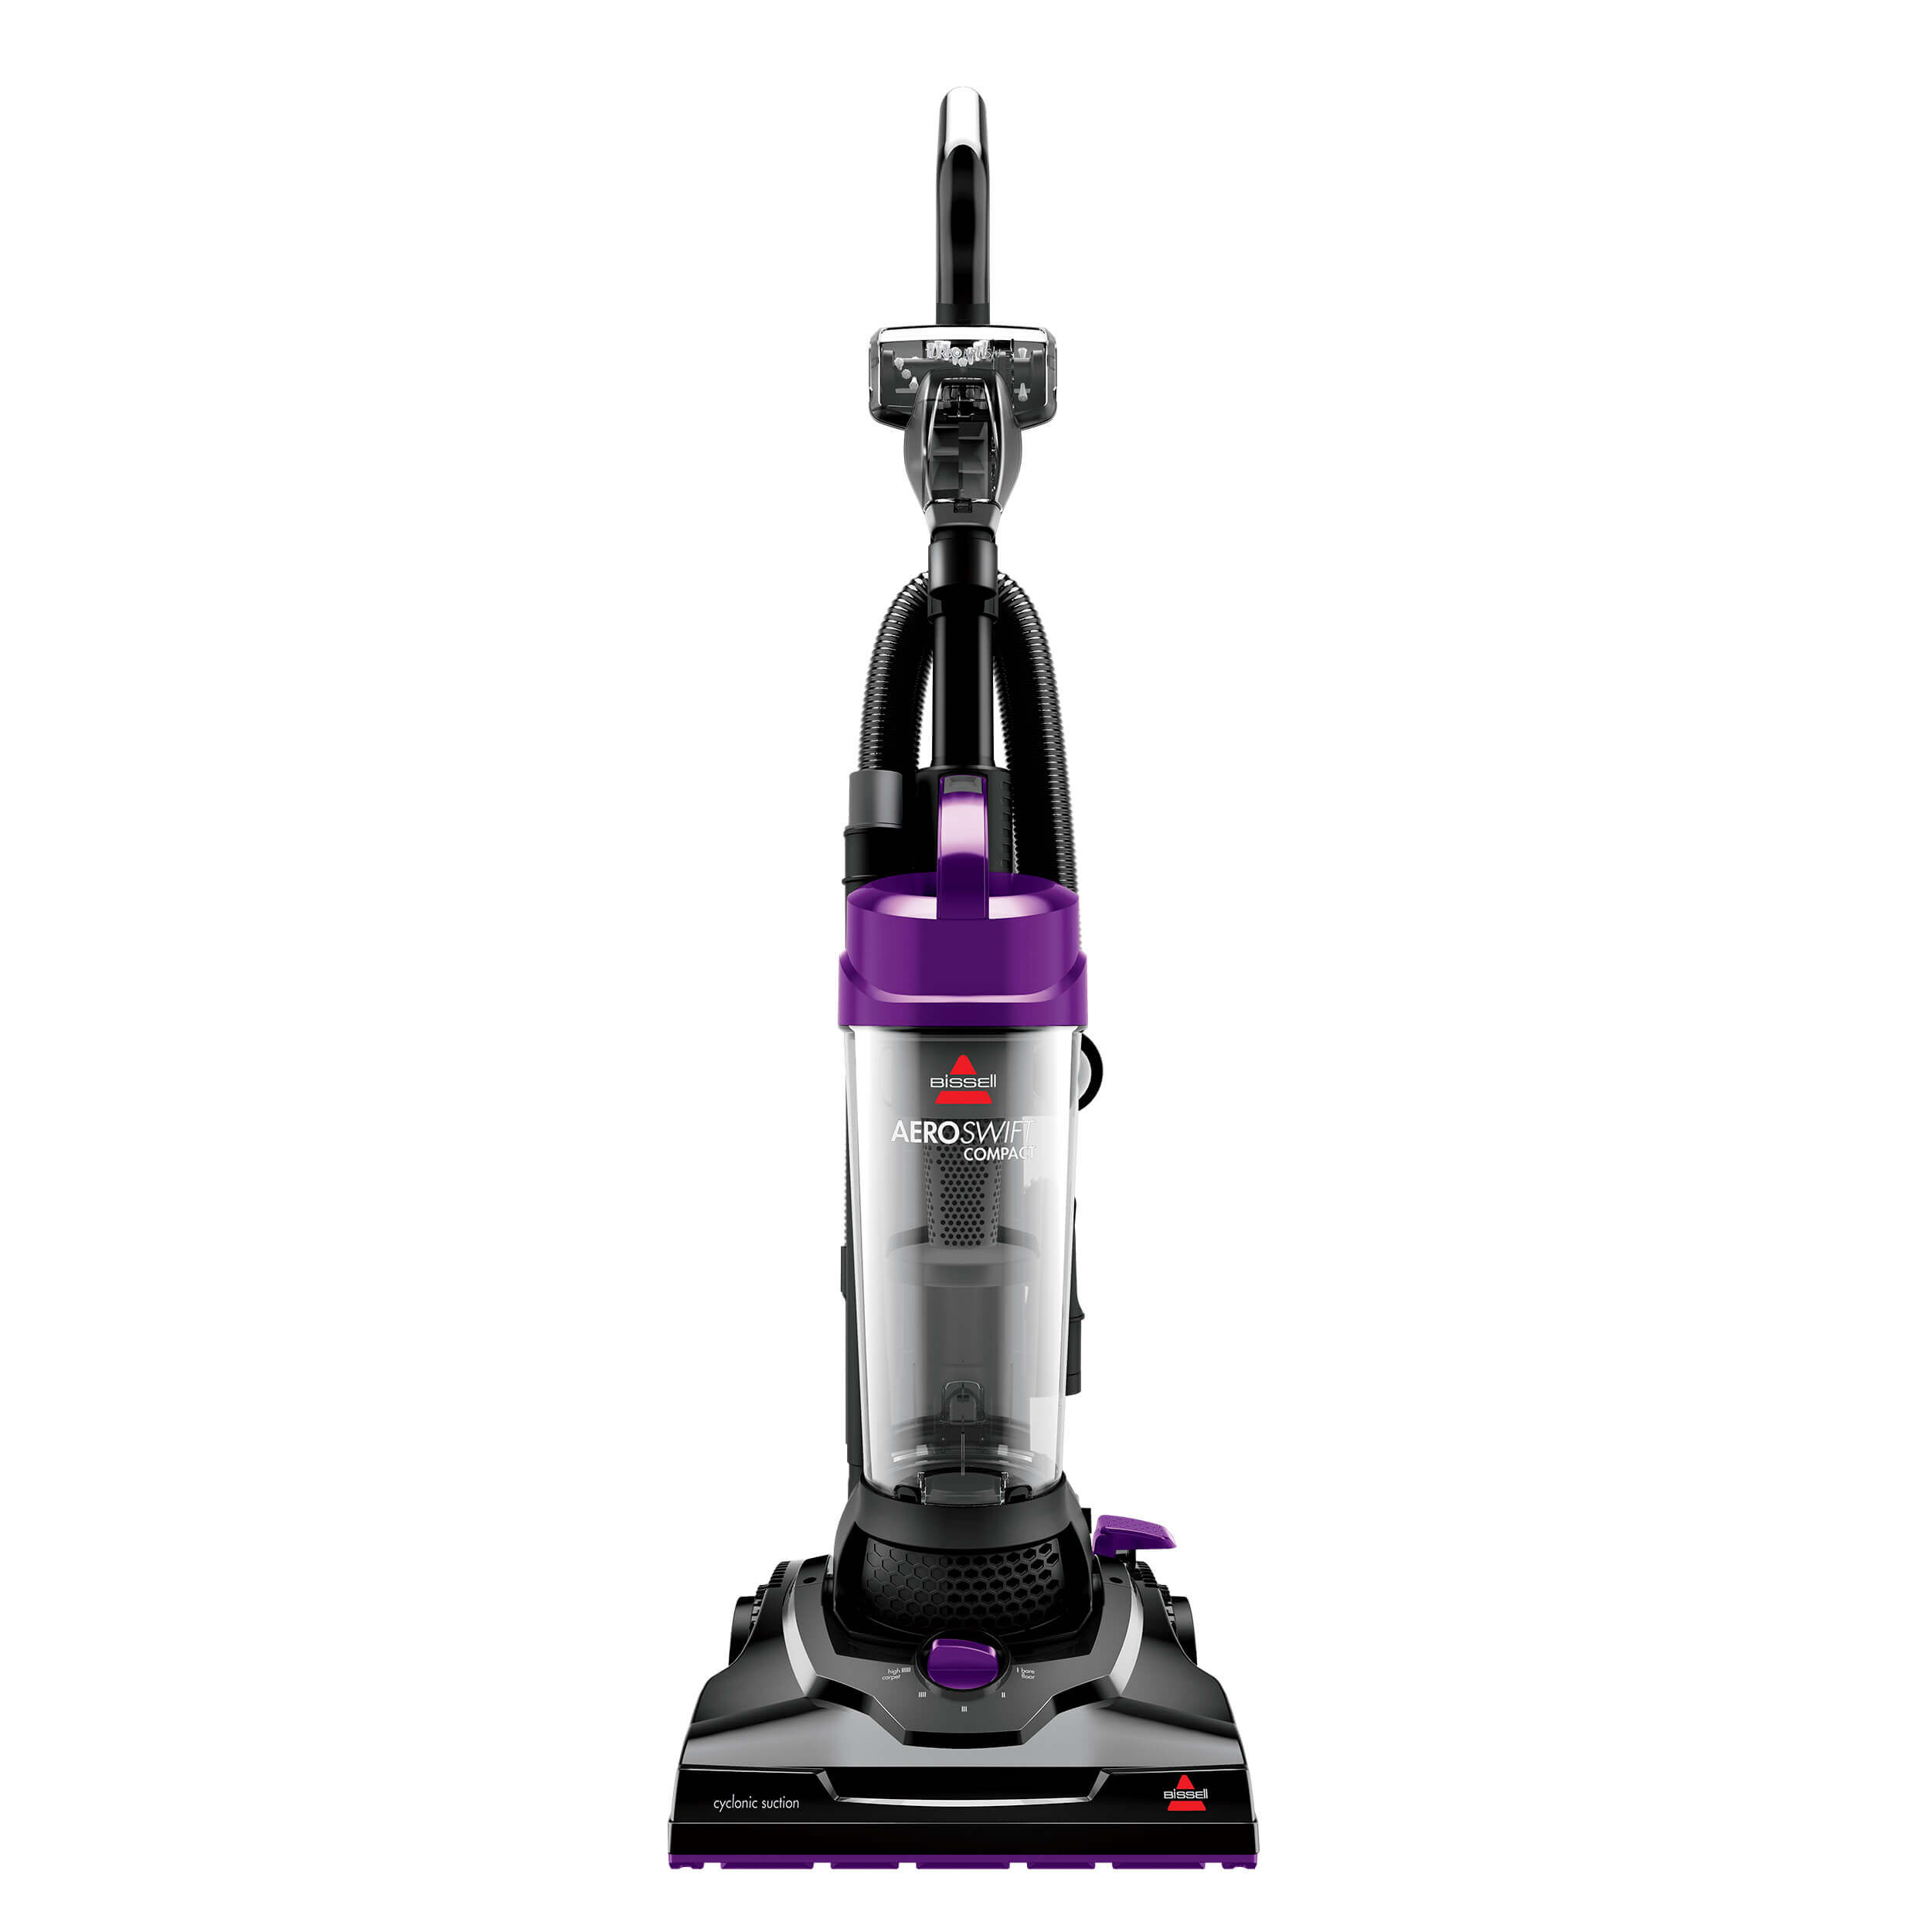 Bissell Aeroswift Compact Vacuum 2612 Bissell Vacuuming